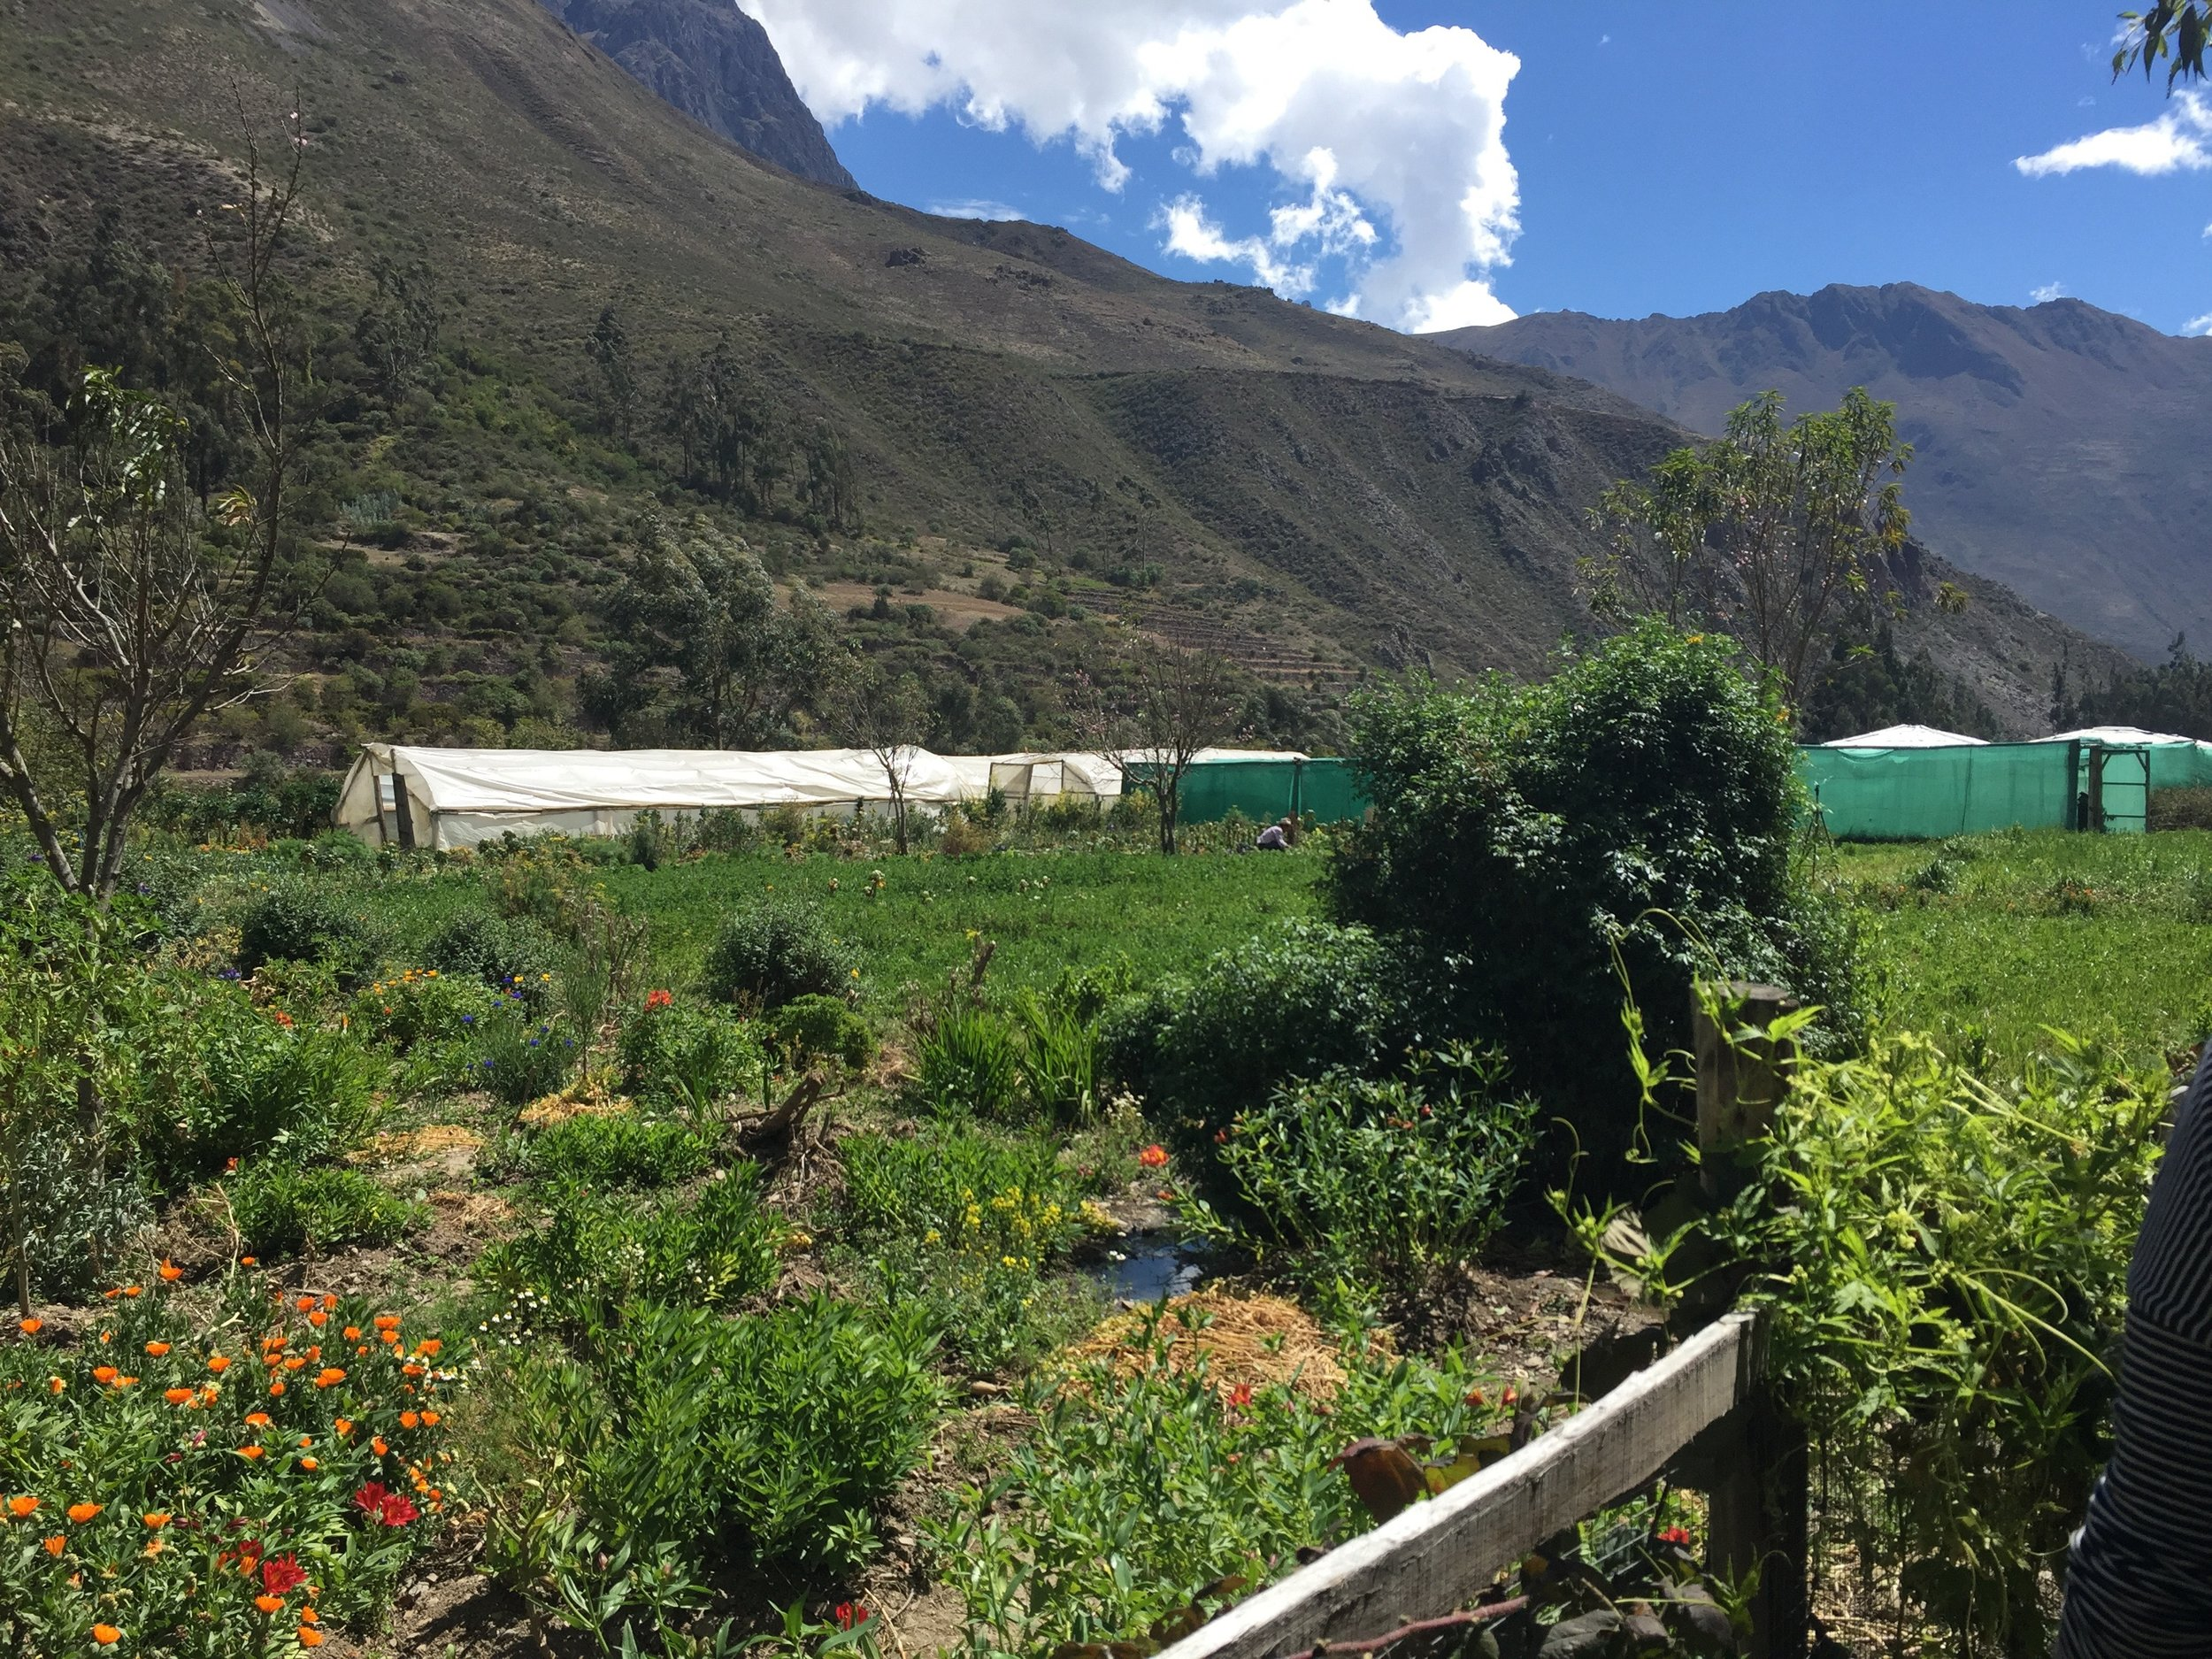 Farm in the Scared Valley of Peru